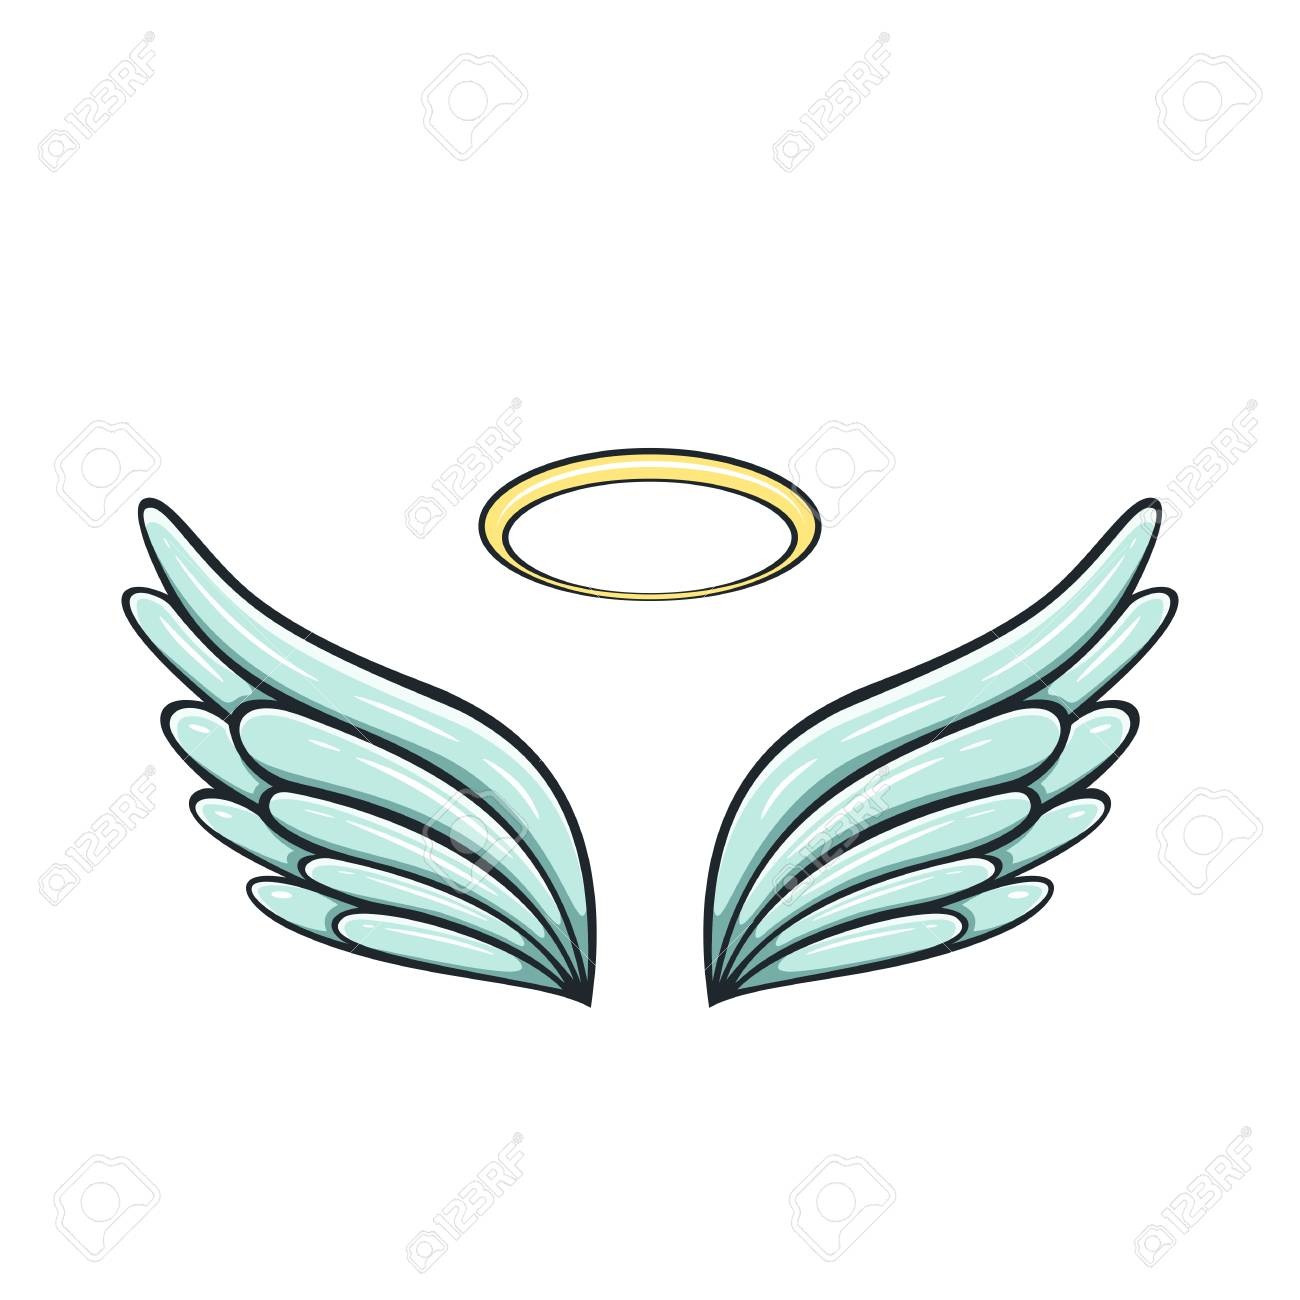 da299b506 Angel wings and halo isolated on white background, illustration. Stock  Vector - 106773283